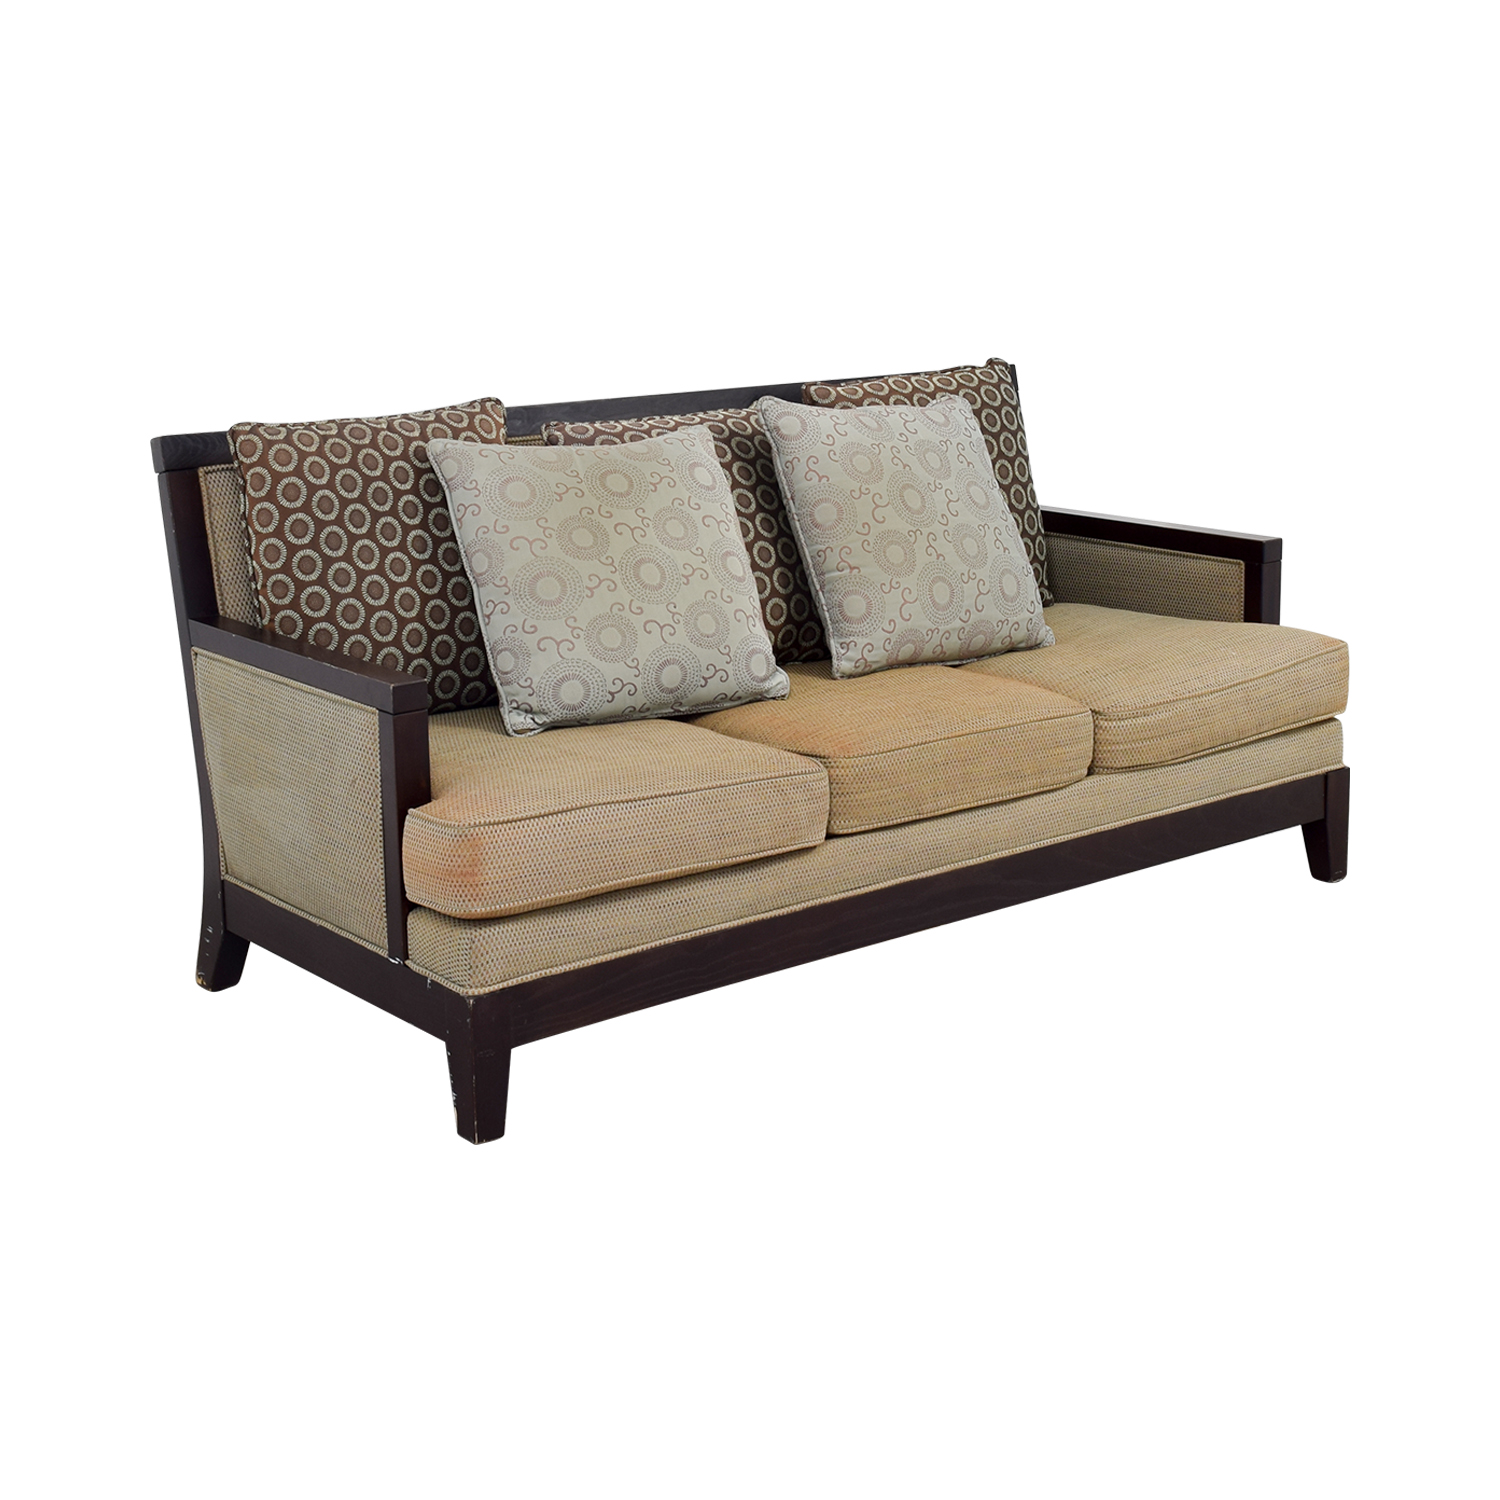 90% OFF - Tan Three-Cushion Couch with Wood Frame / Sofas